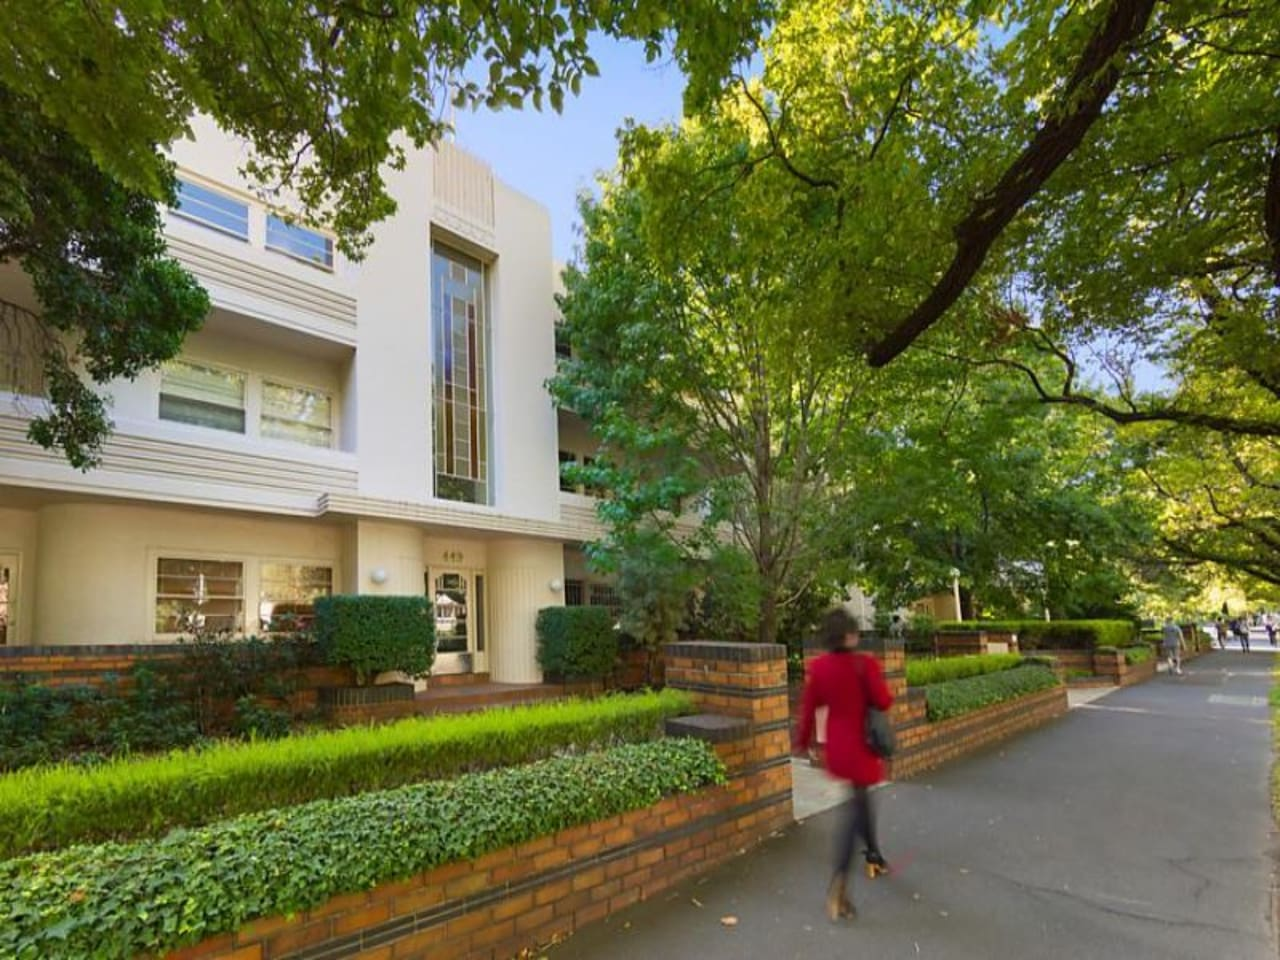 Luxury Art Deco 1930's St Kilda Rd 2 Bdr Apartment.